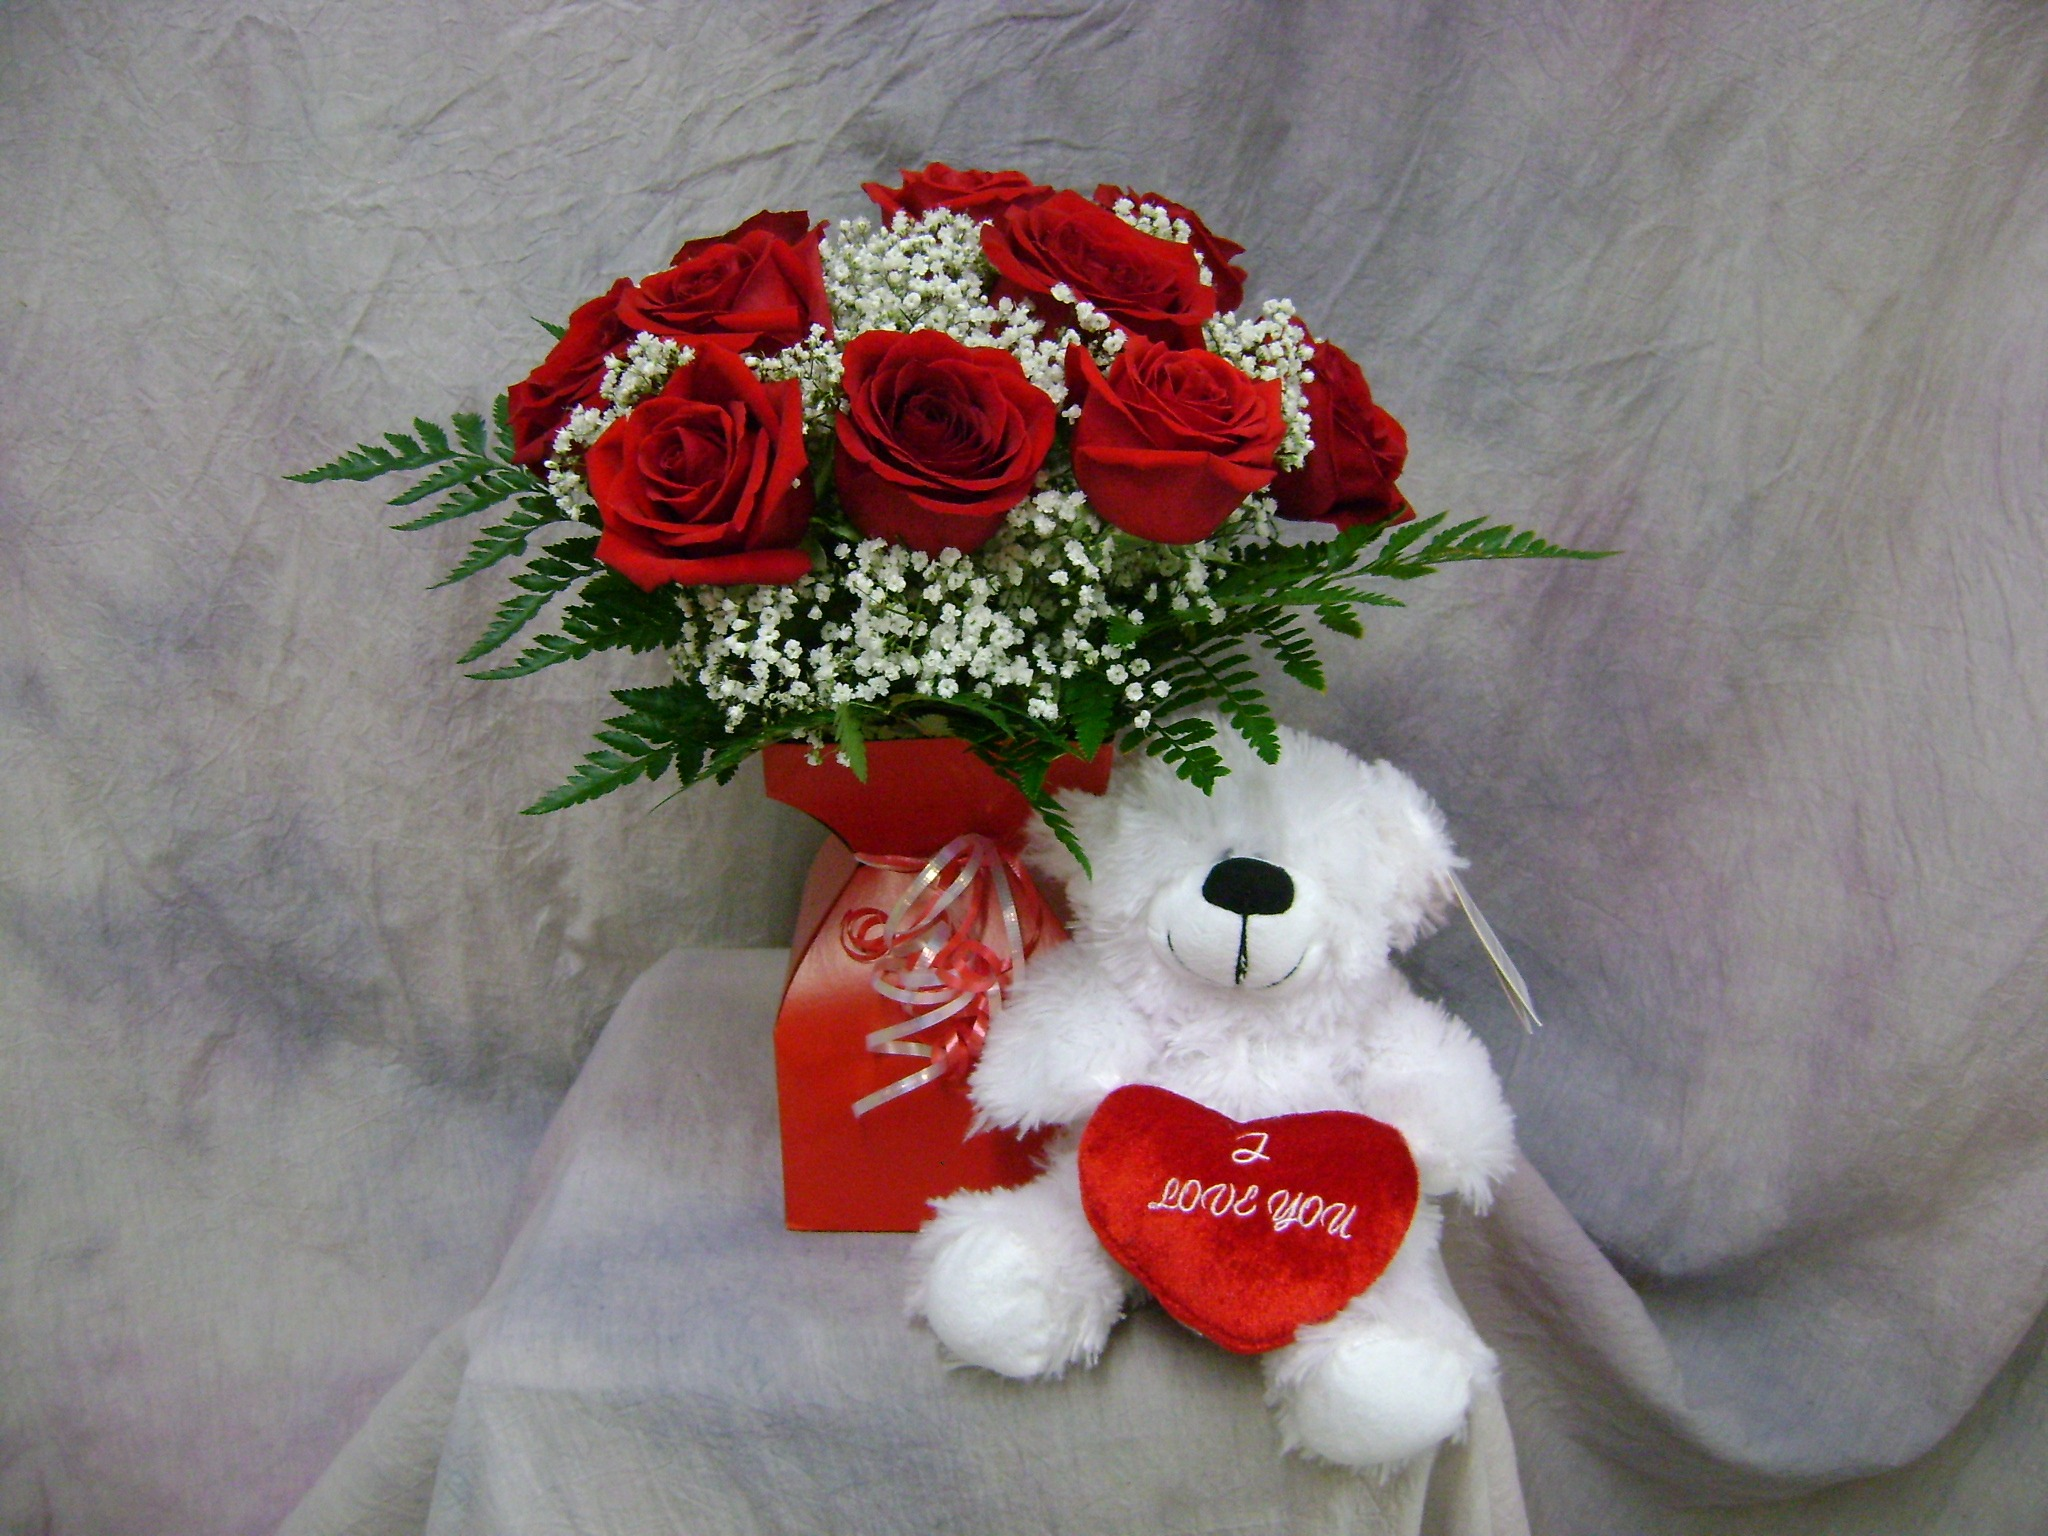 Sweetheart rose shop dz of short red roses with a teddy bear izmirmasajfo